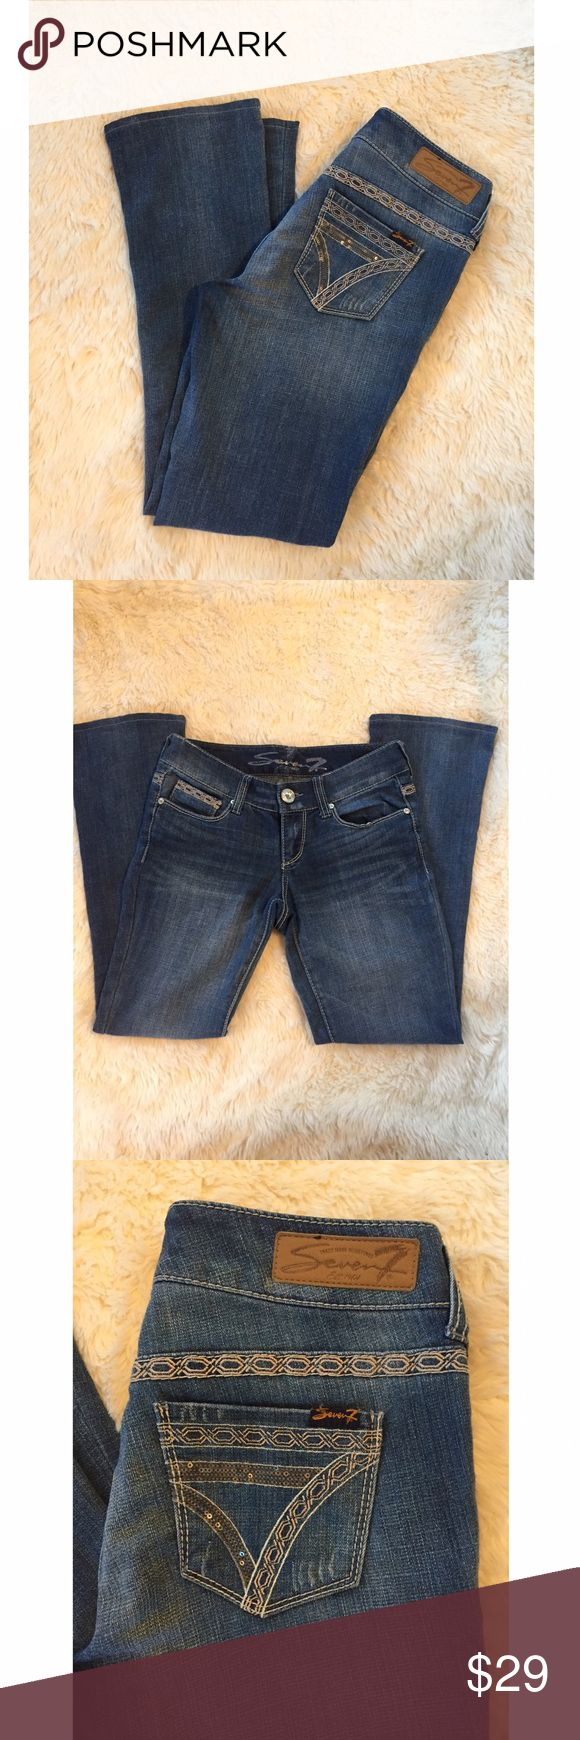 Seven7 Jeans Rocker Slim Jean Very good used condition. 8 inch rise. 29 inch inseam Seven7 Jeans Boot Cut